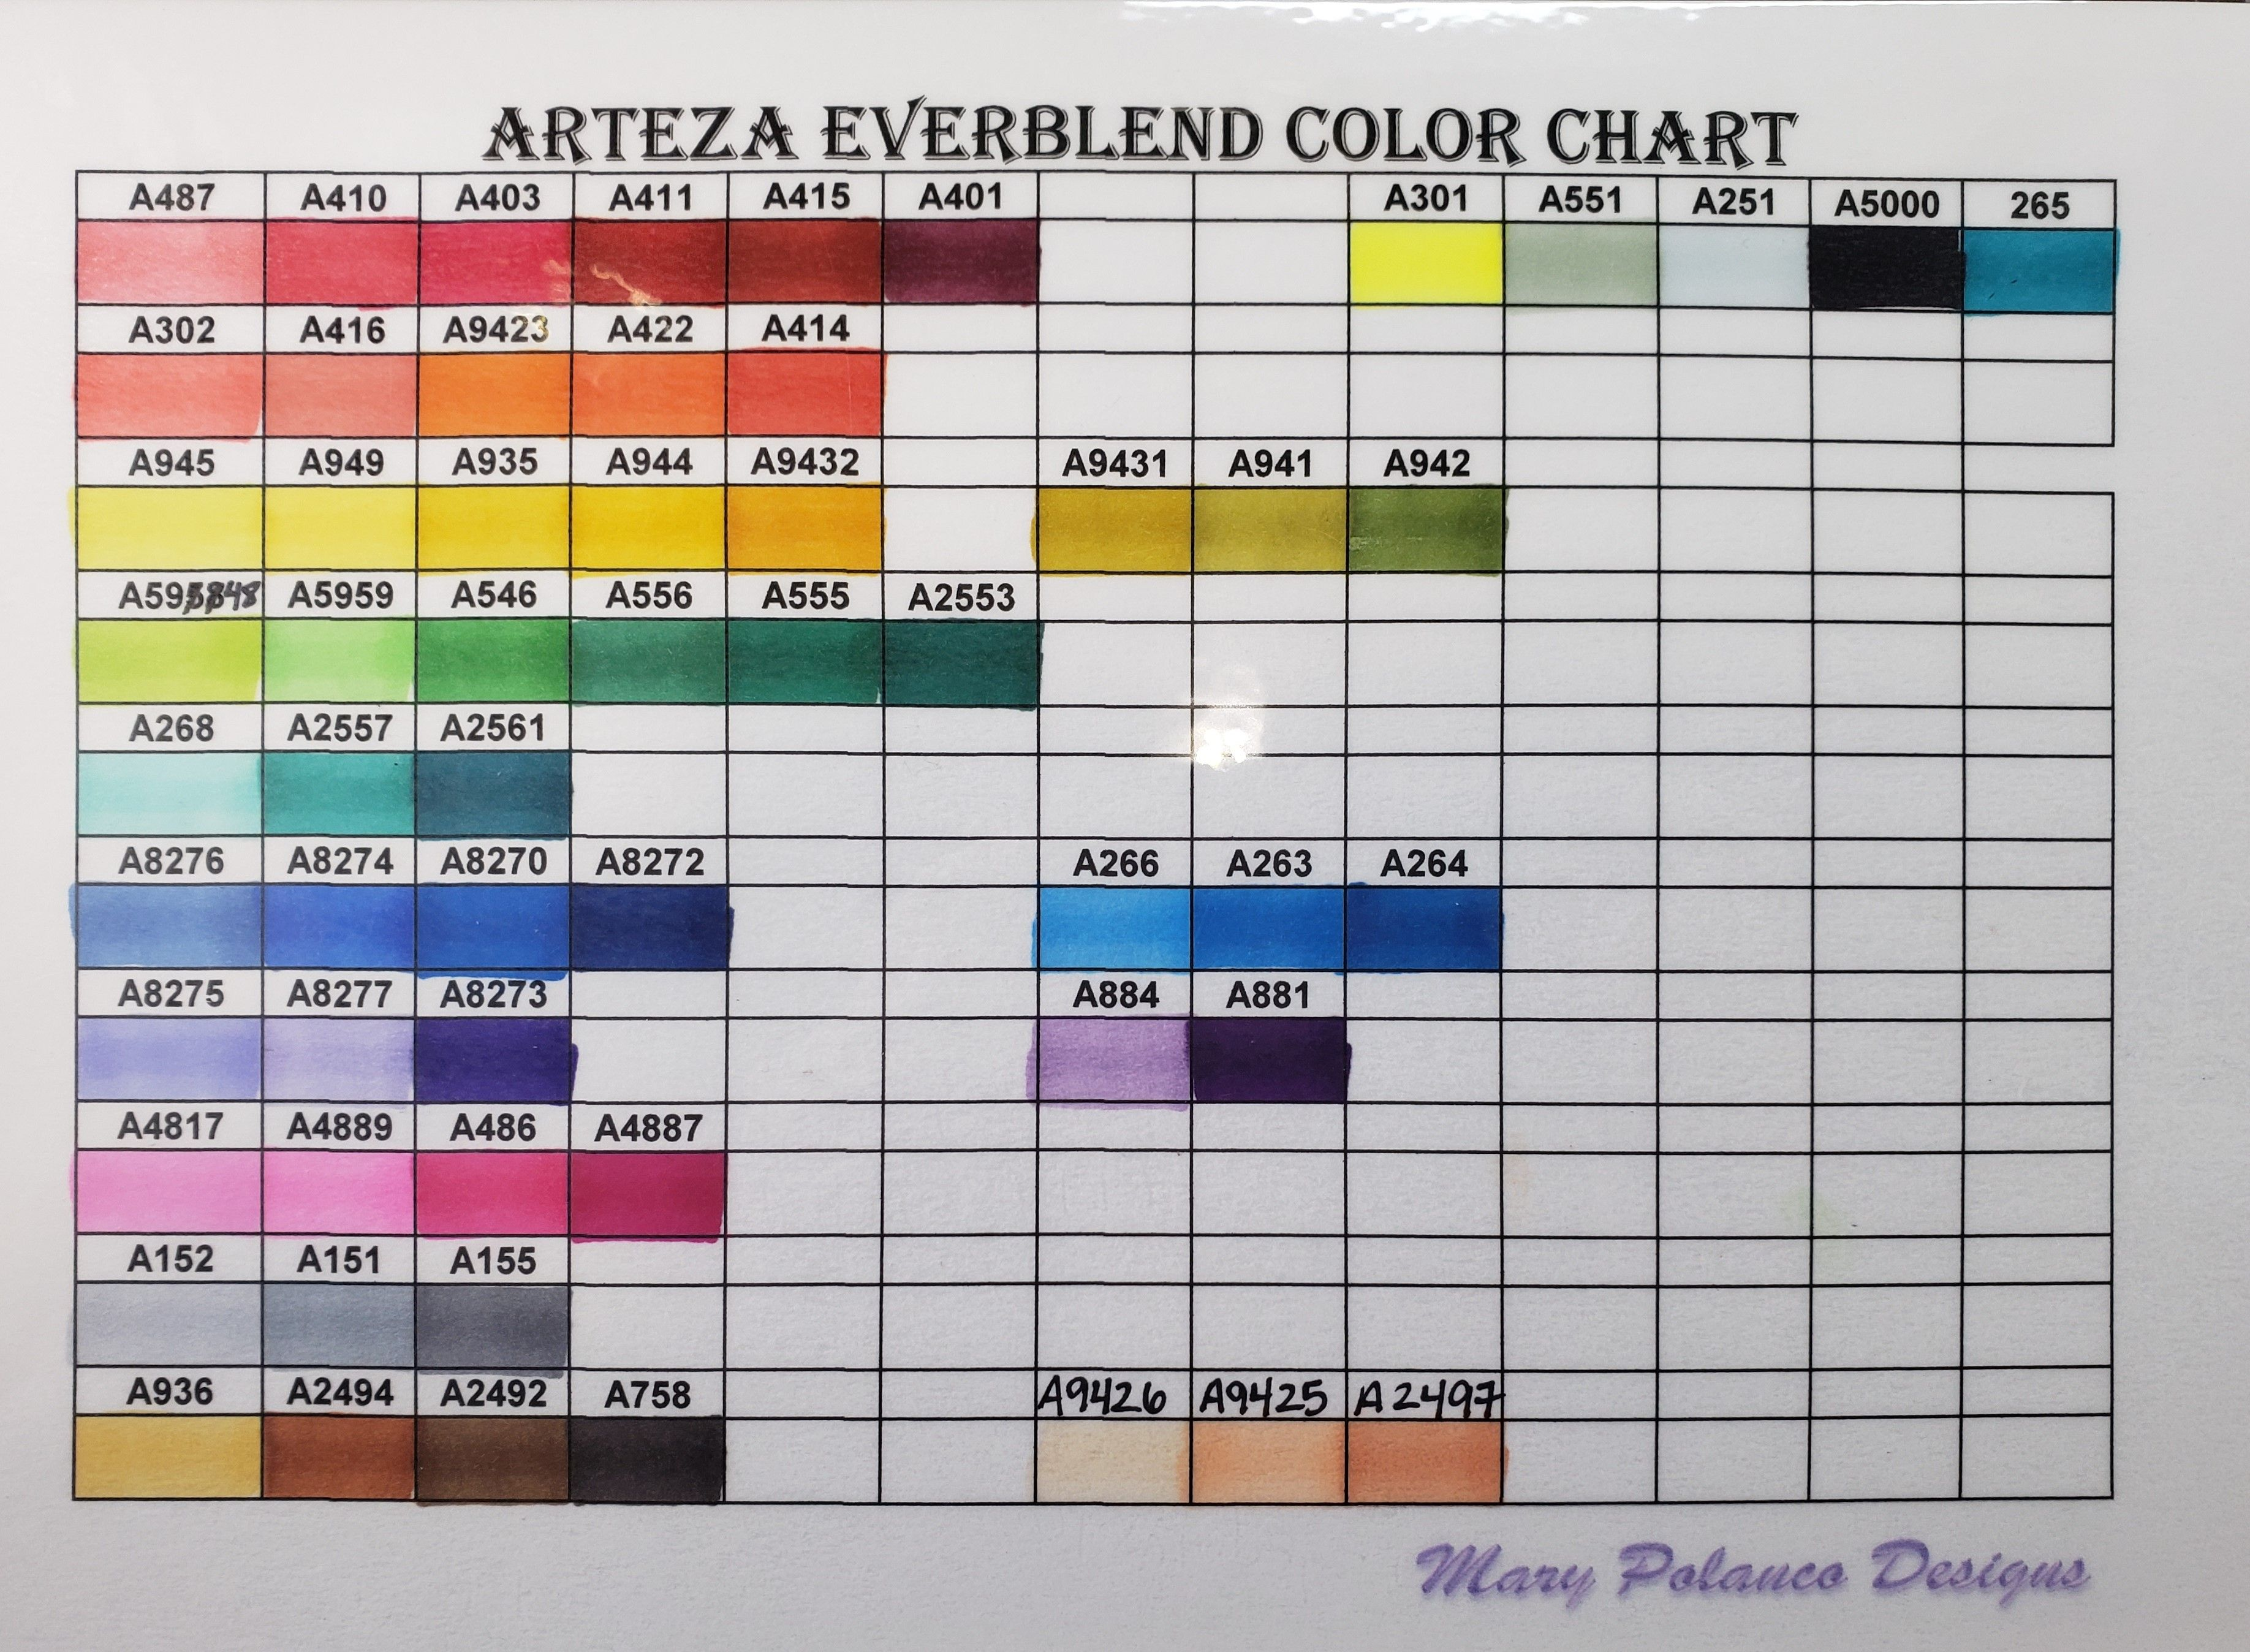 Arteza Everblend Alcohol Marker Color Chart Alcohol Markers Arteza Color Chart